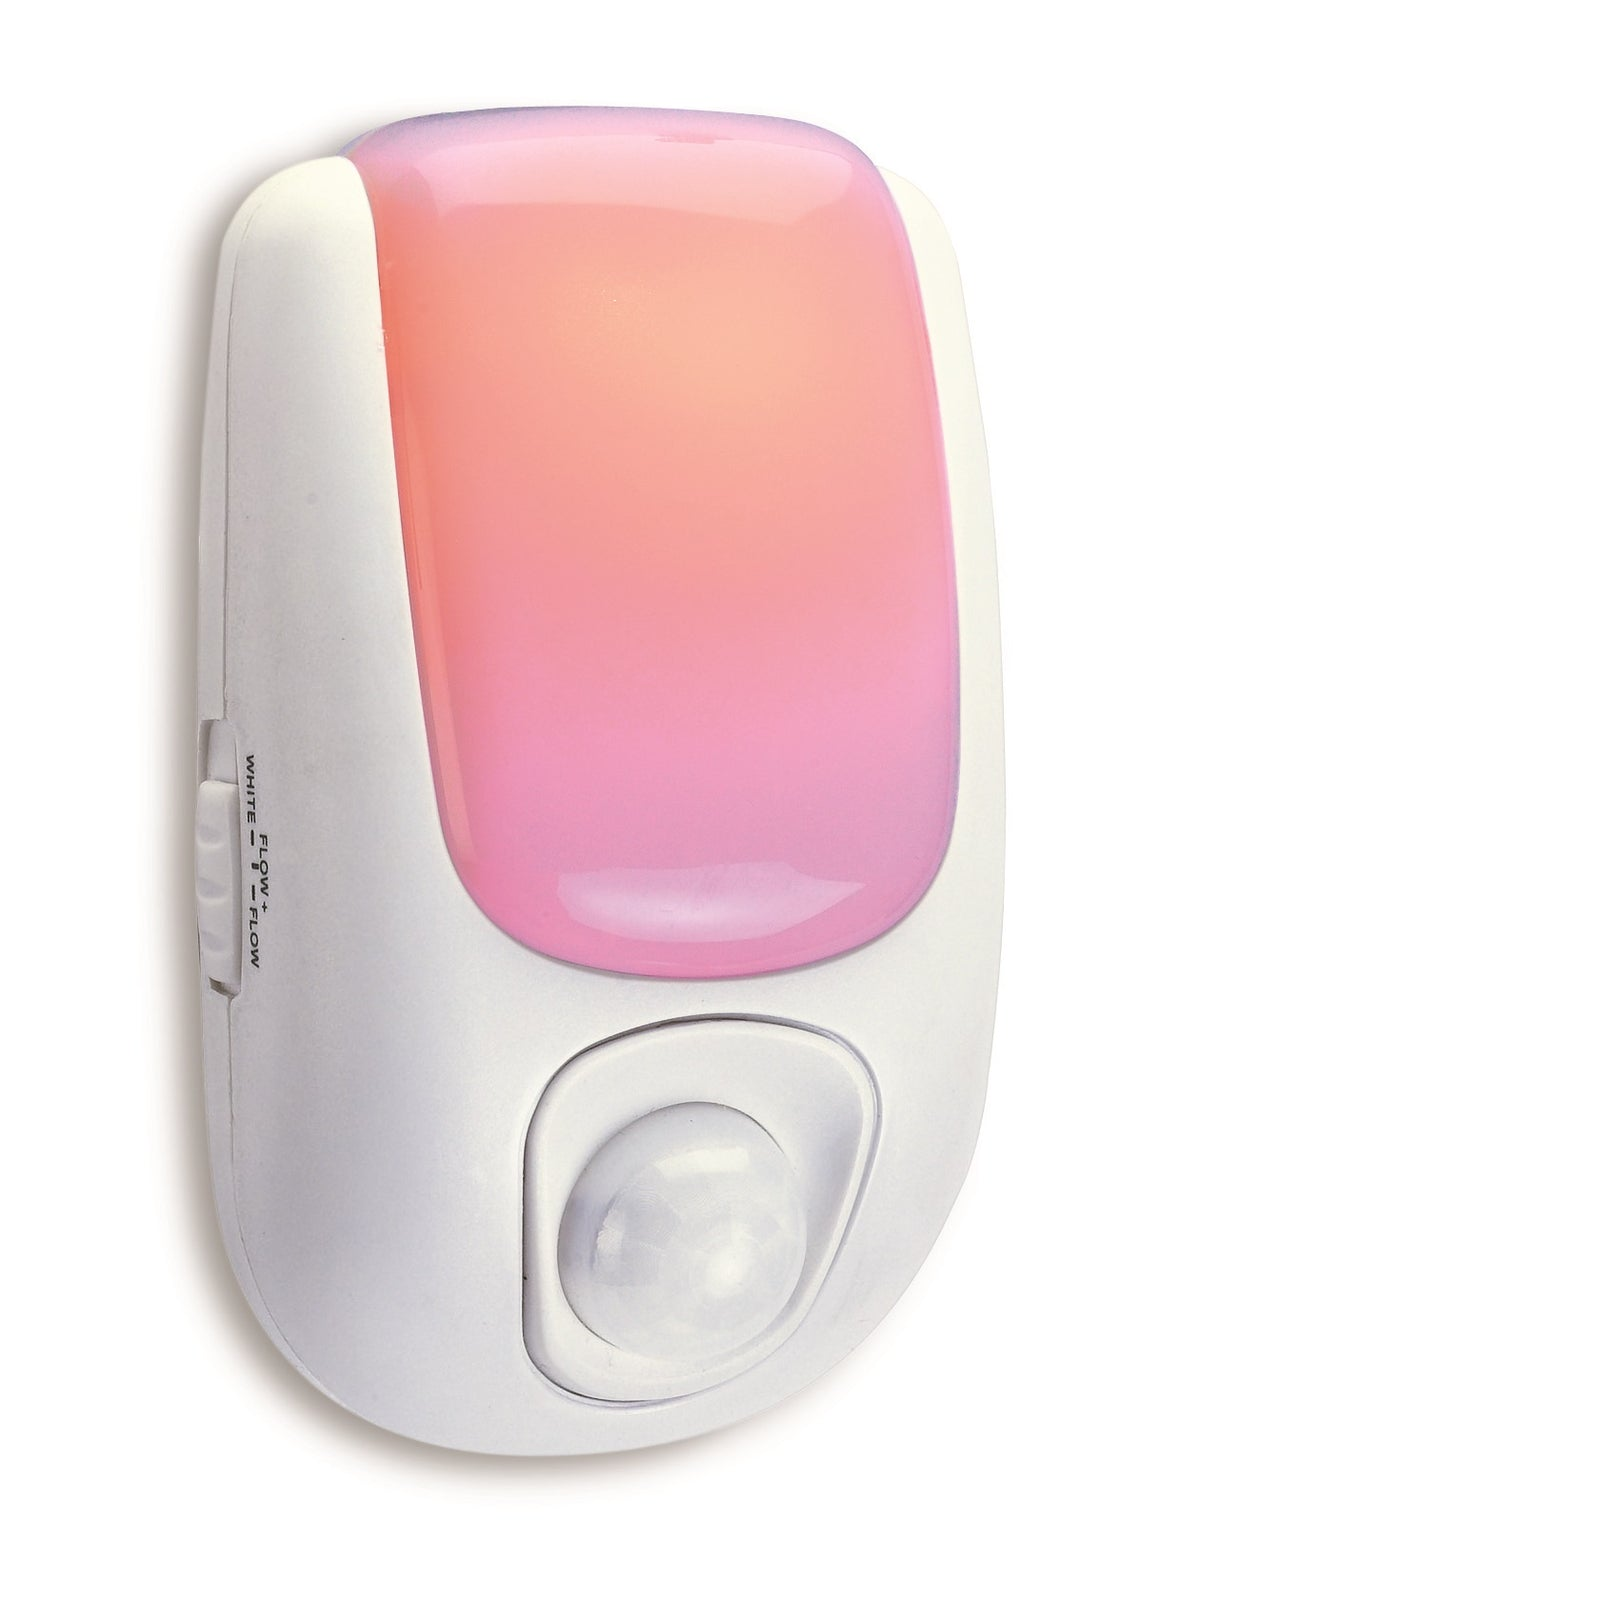 LED Colour Changing Night Light with Motion Sensor